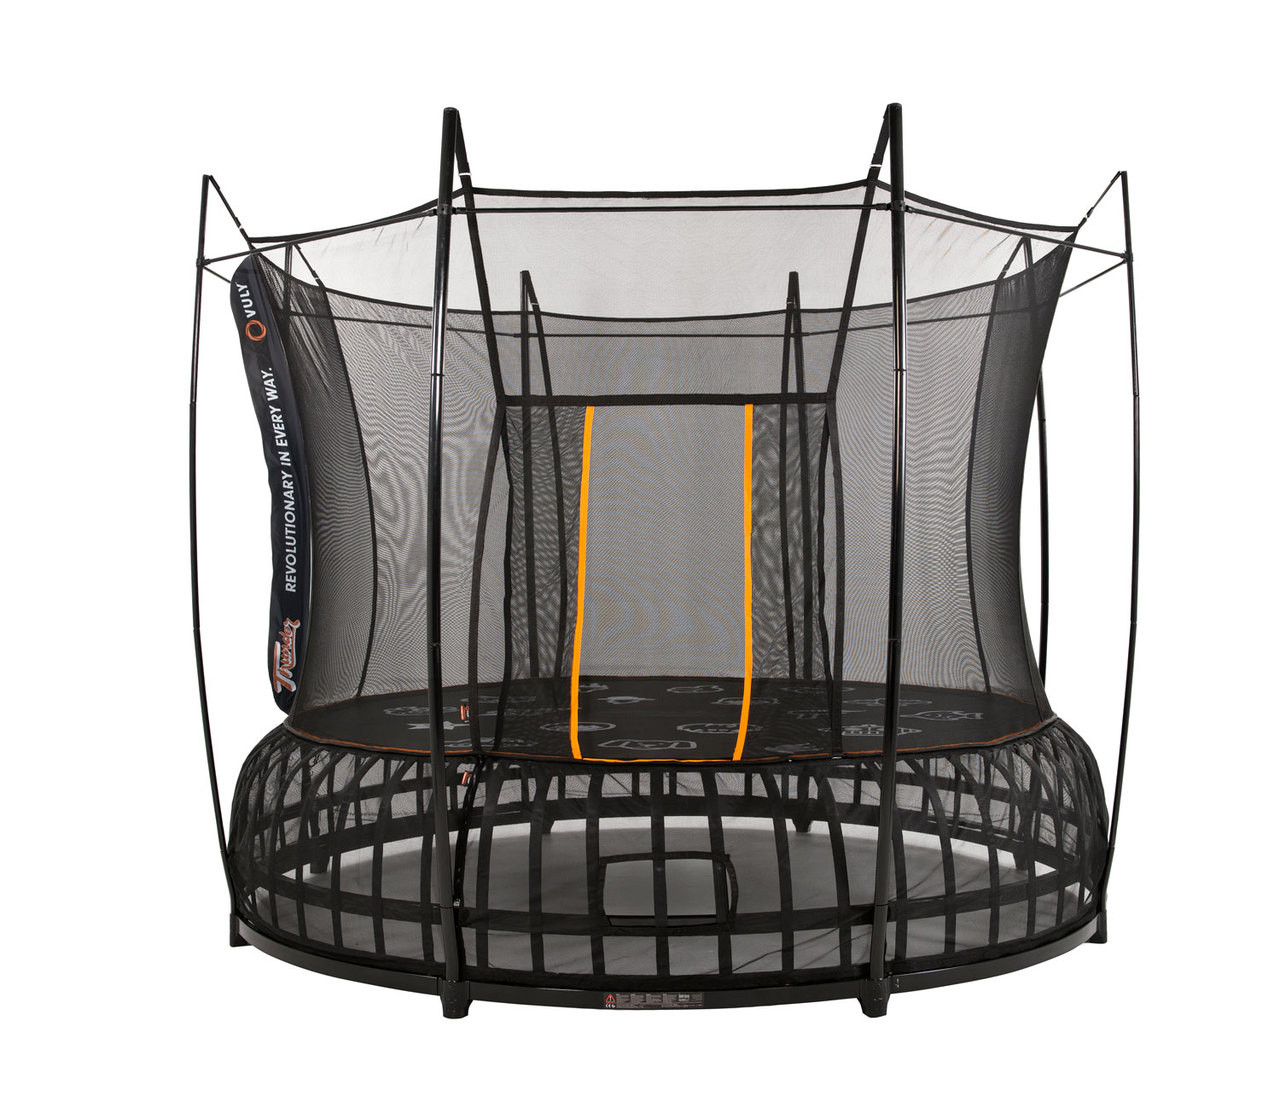 Trampoline Sale Australia Swing Set Kits Bing Images